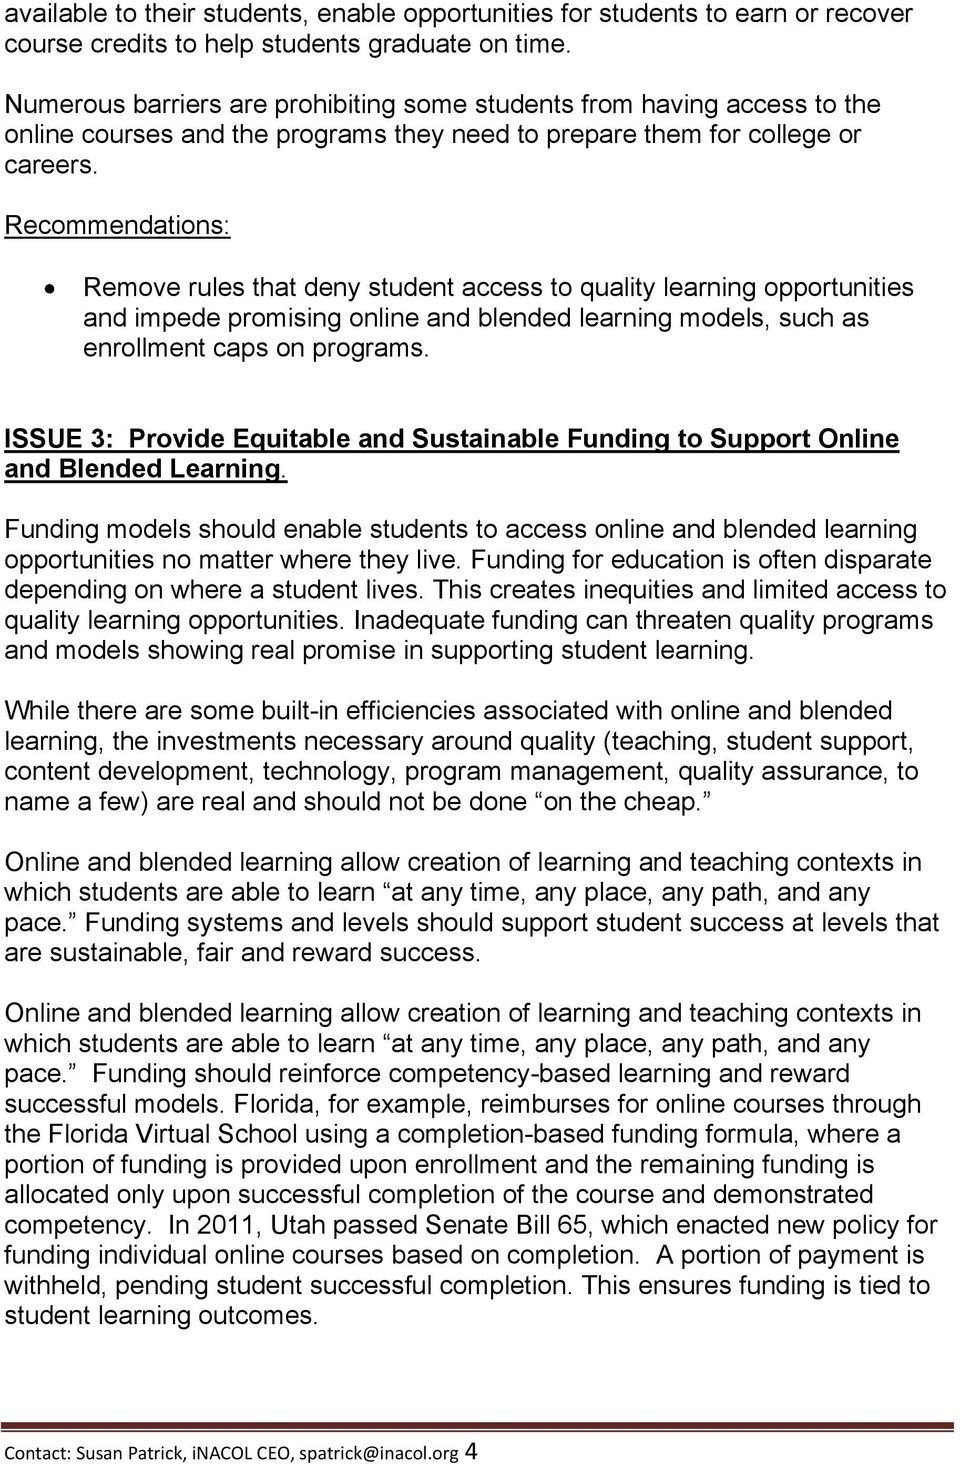 Recommendations: Remove rules that deny student access to quality learning opportunities and impede promising online and blended learning models, such as enrollment caps on programs.